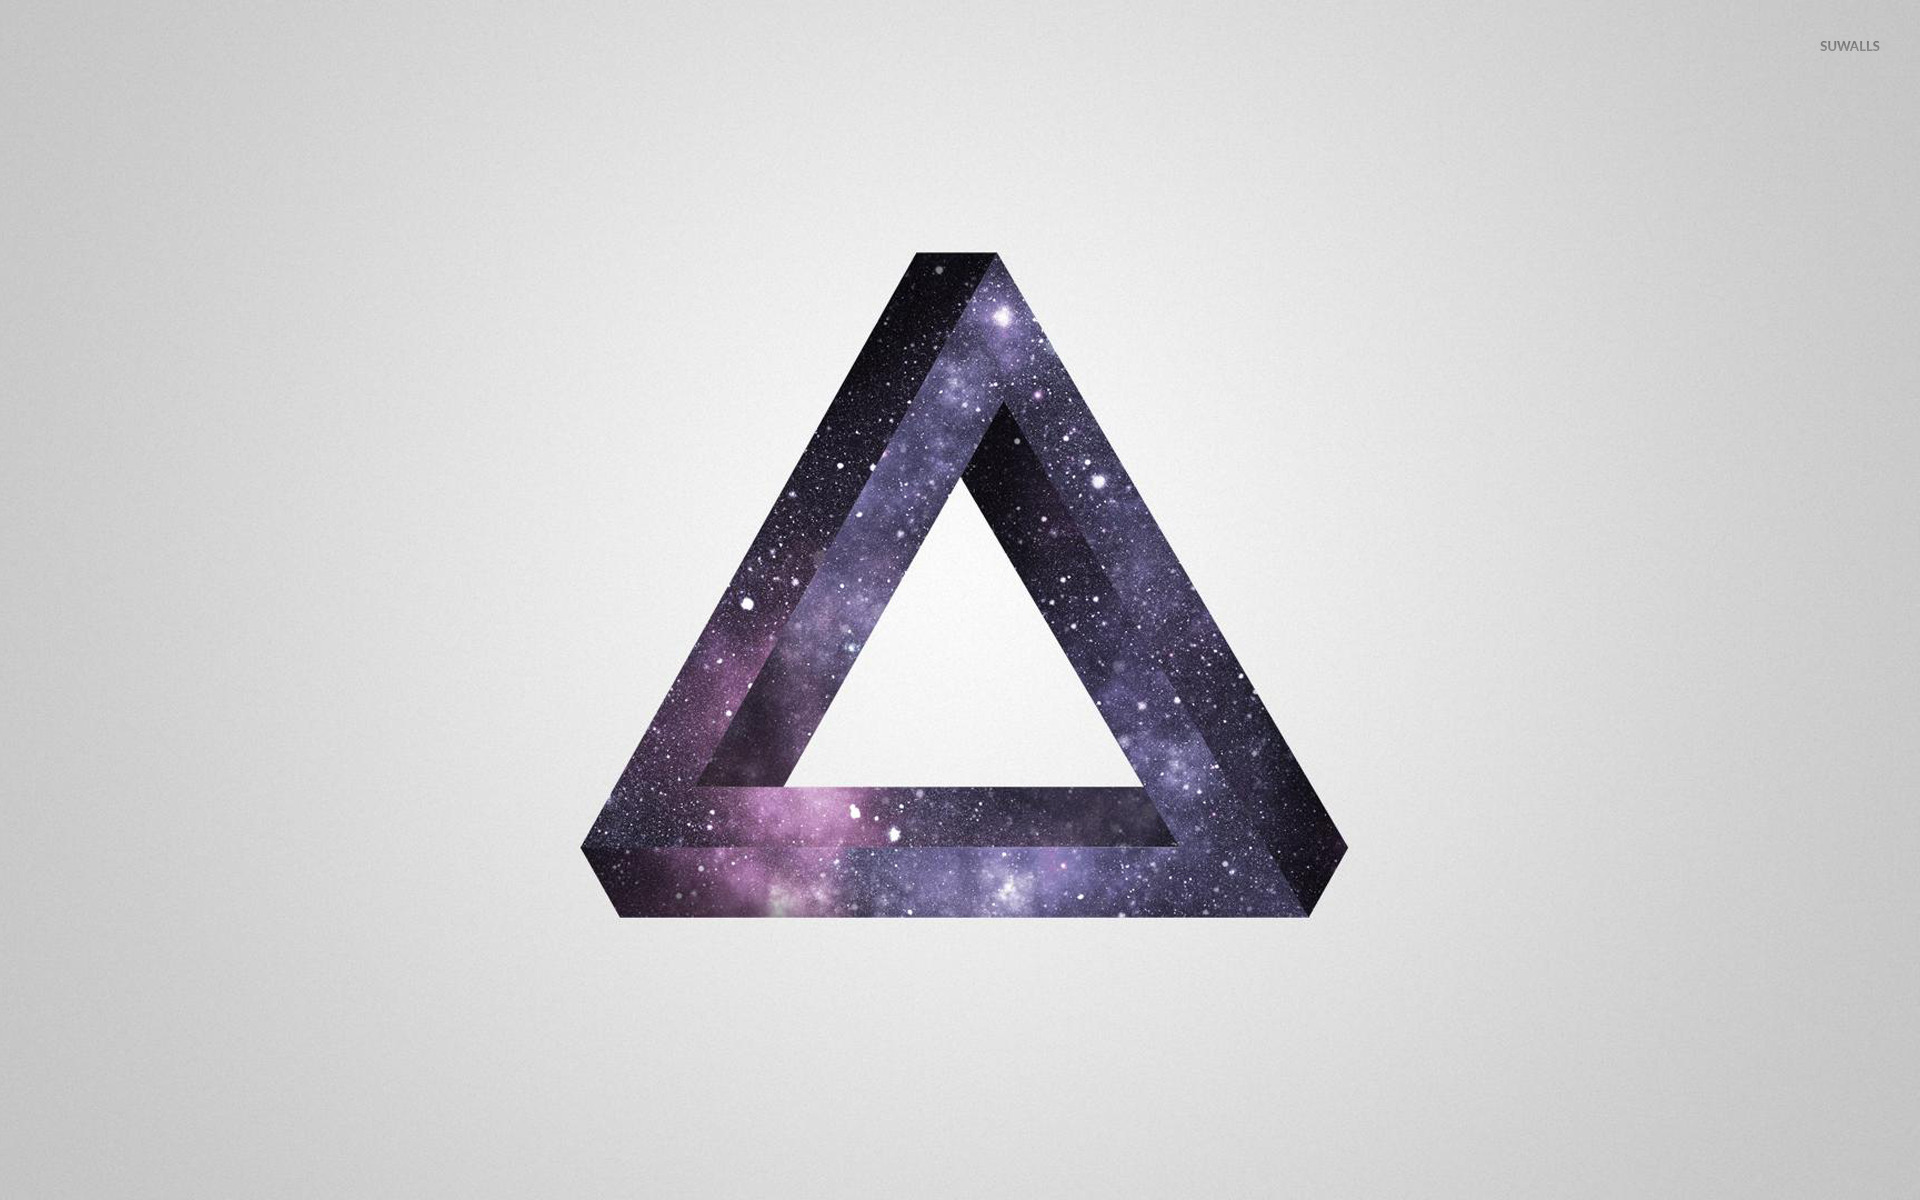 Penrose triangle wallpaper - Digital Art wallpapers - #14258